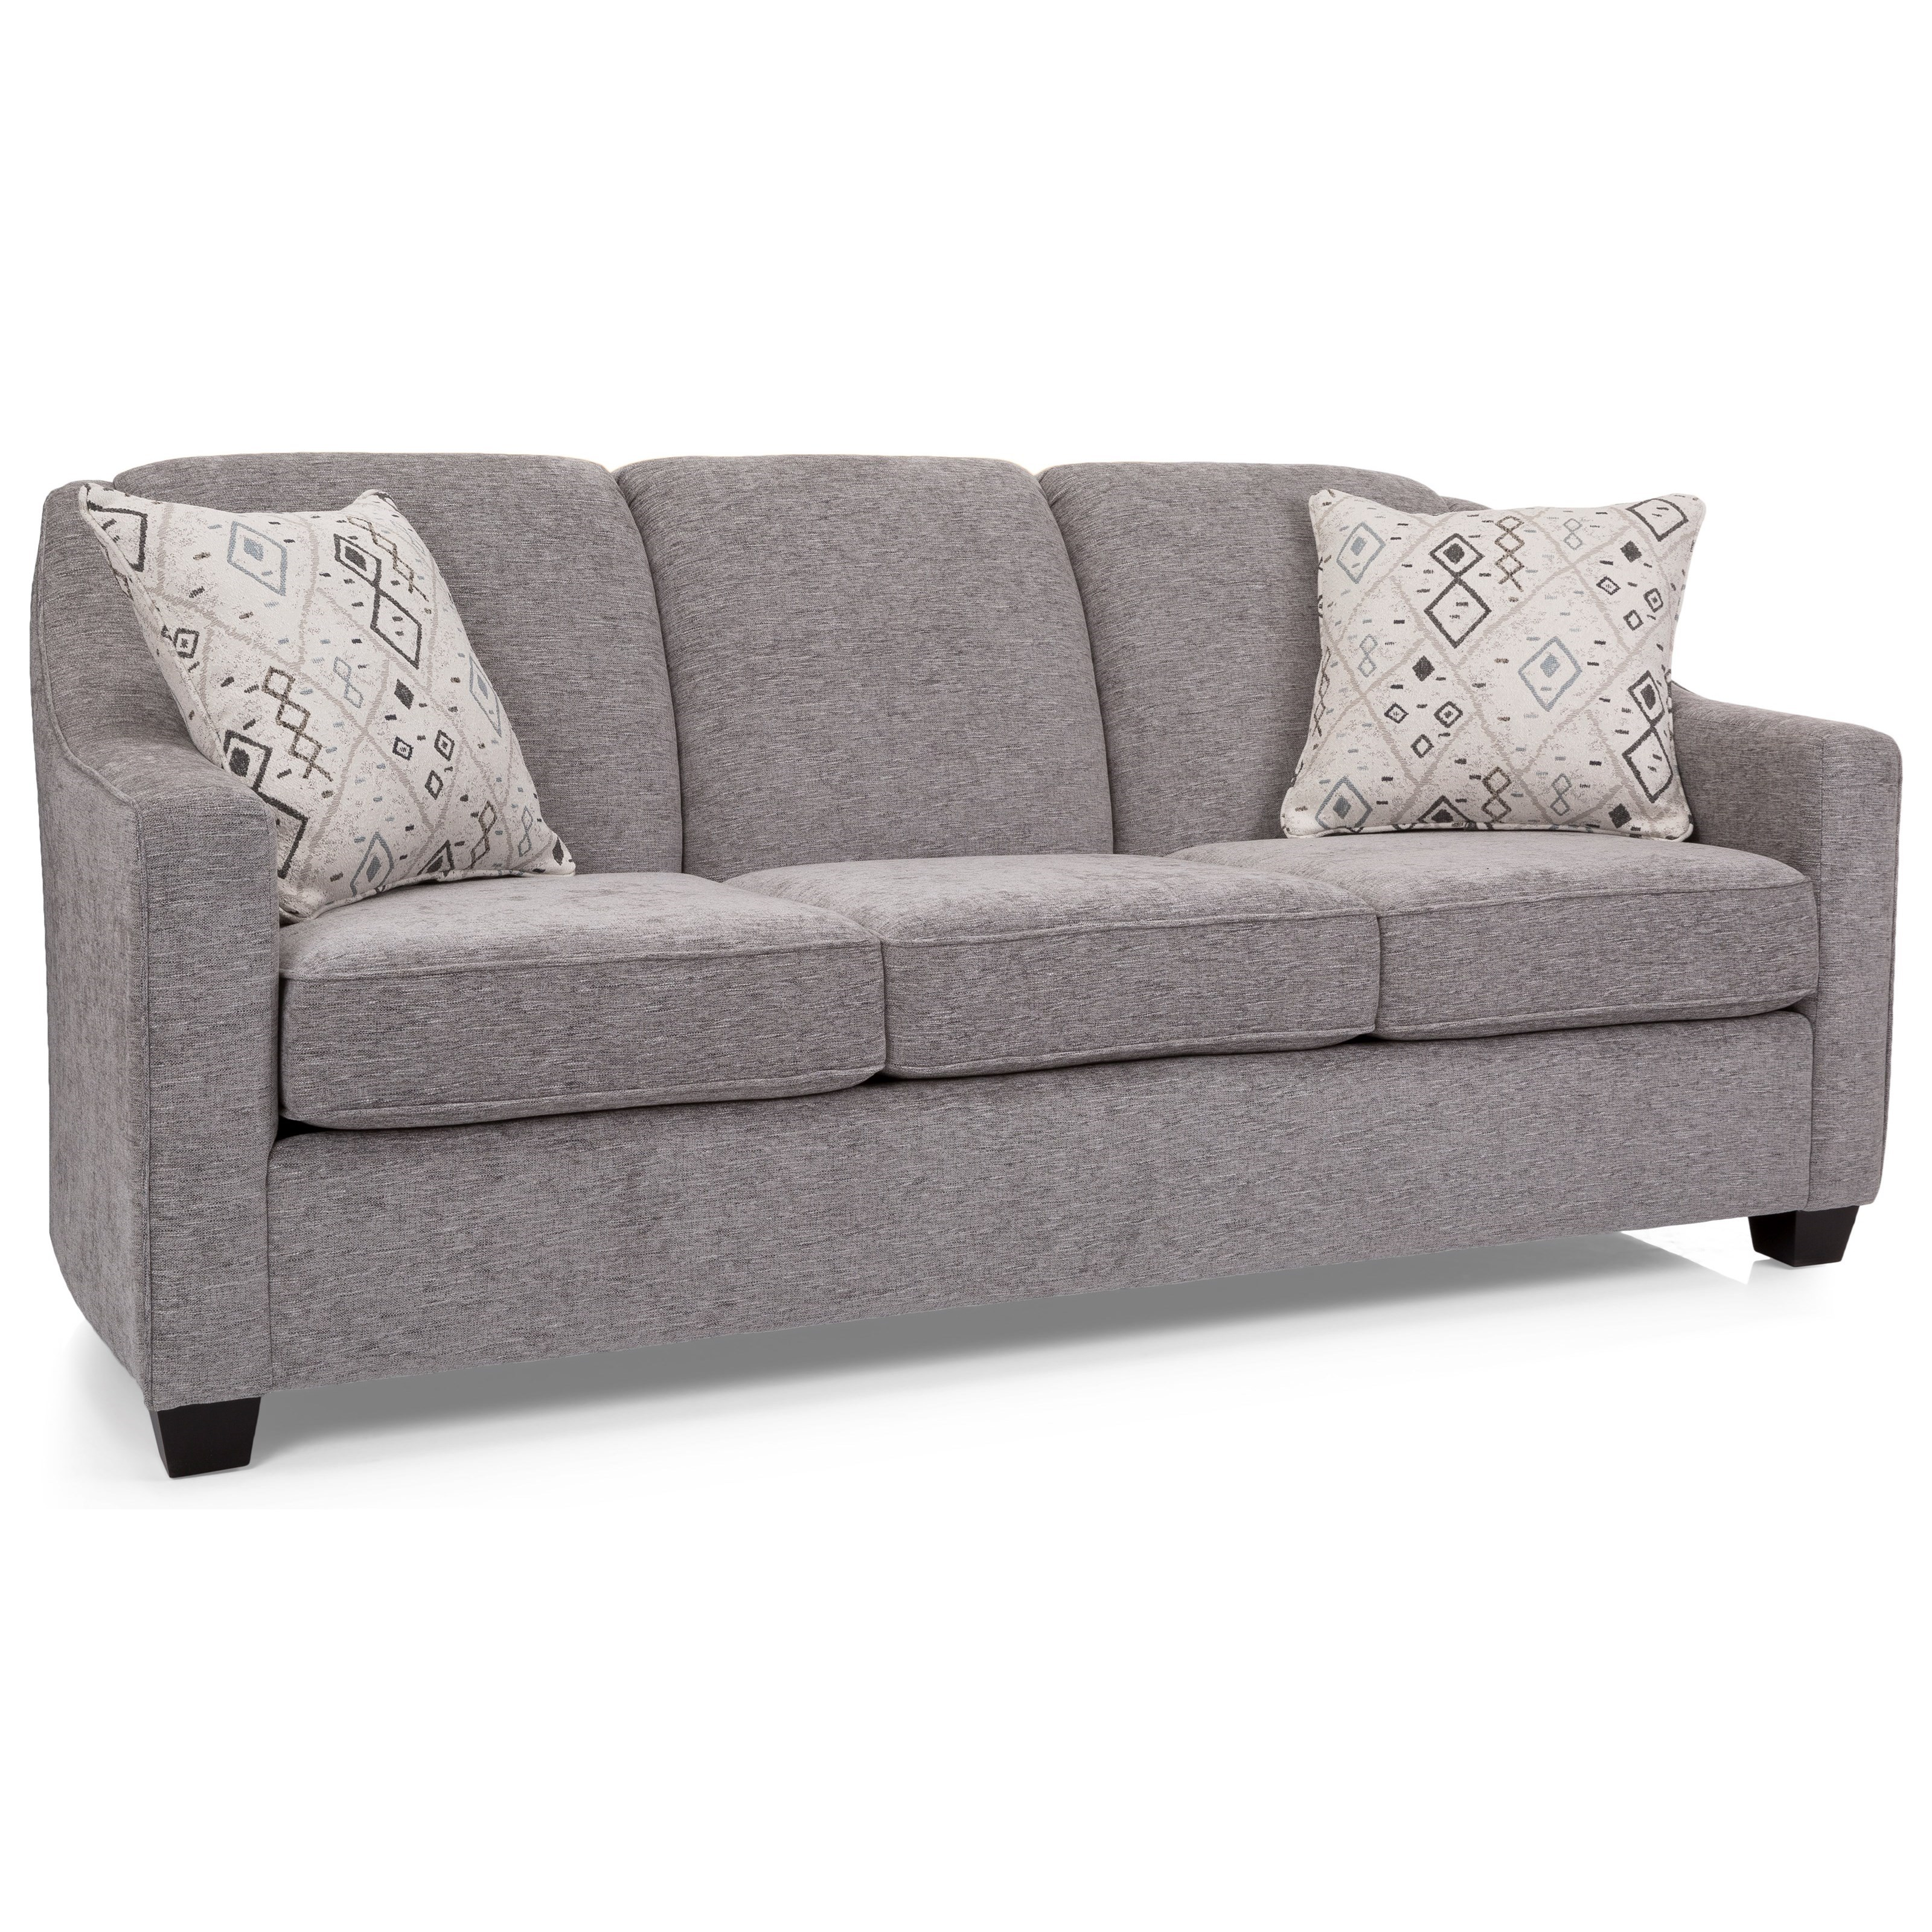 2934 Sofa by Decor-Rest at Upper Room Home Furnishings